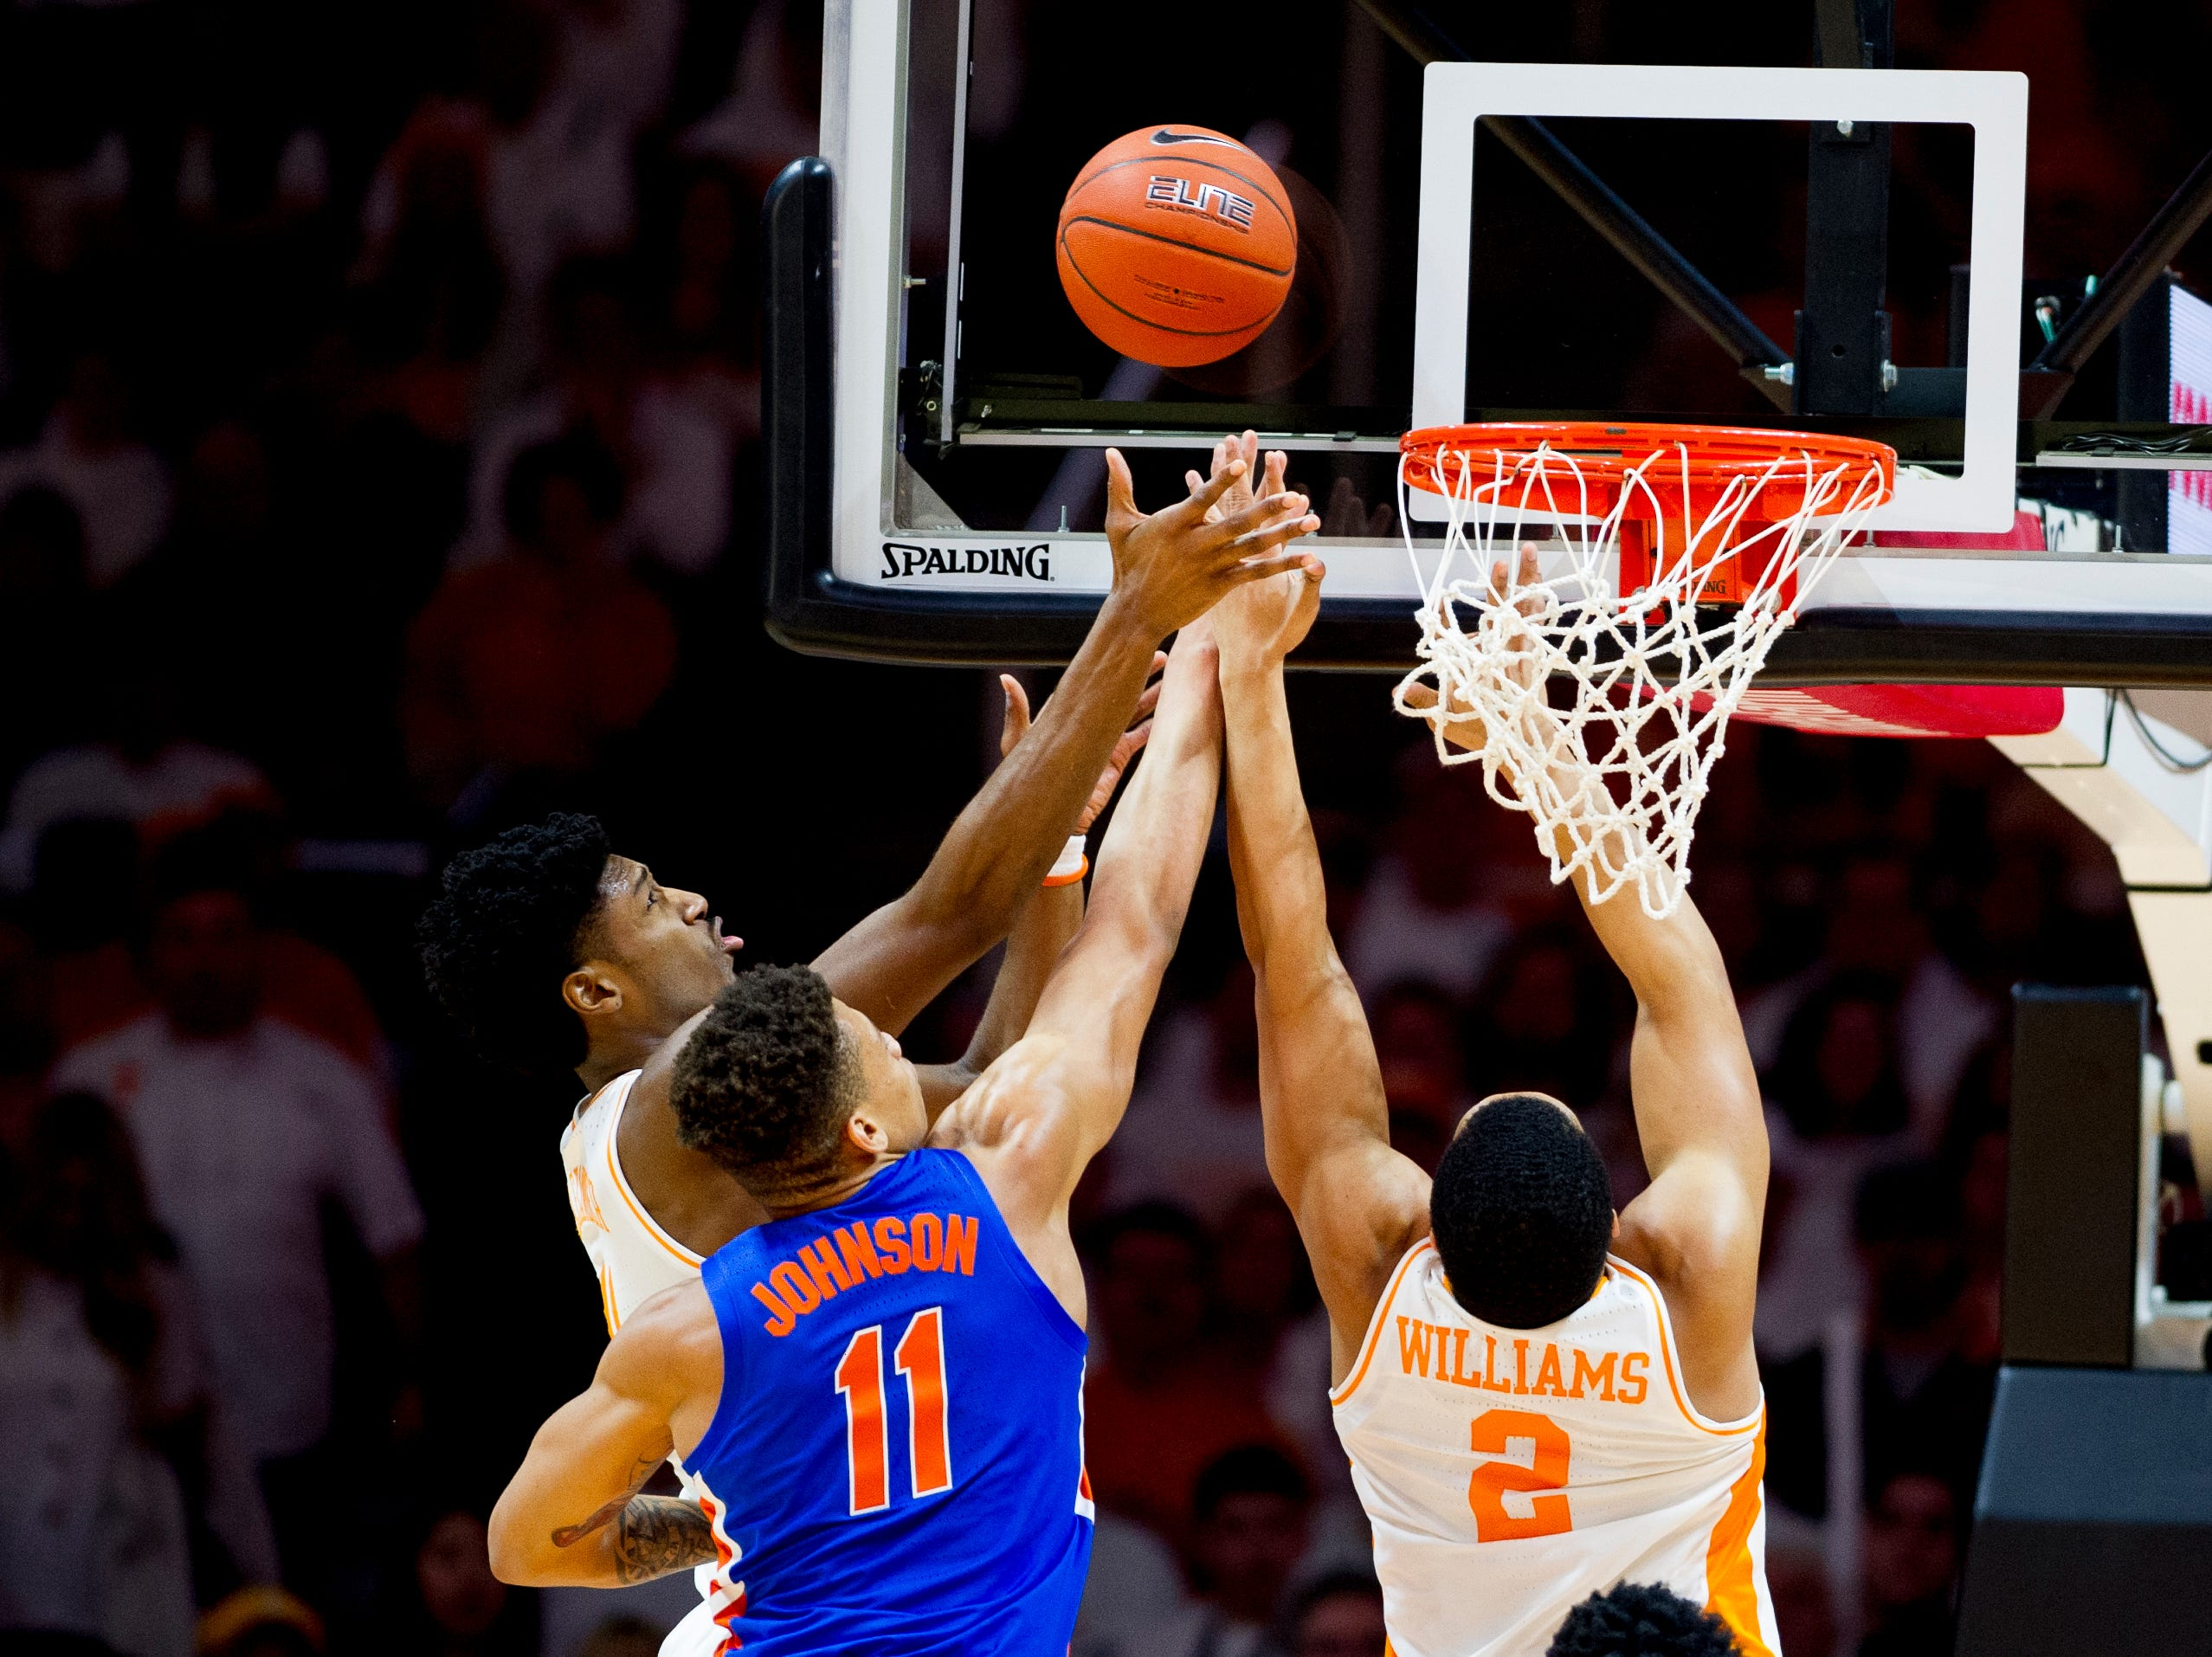 Tennessee forward Kyle Alexander (11), Florida forward Keyontae Johnson (11) and Tennessee forward Grant Williams (2) reach for a rebound ball during a game between Tennessee and Florida at Thompson-Boling Arena in Knoxville, Tennessee on Saturday, February 9, 2019.